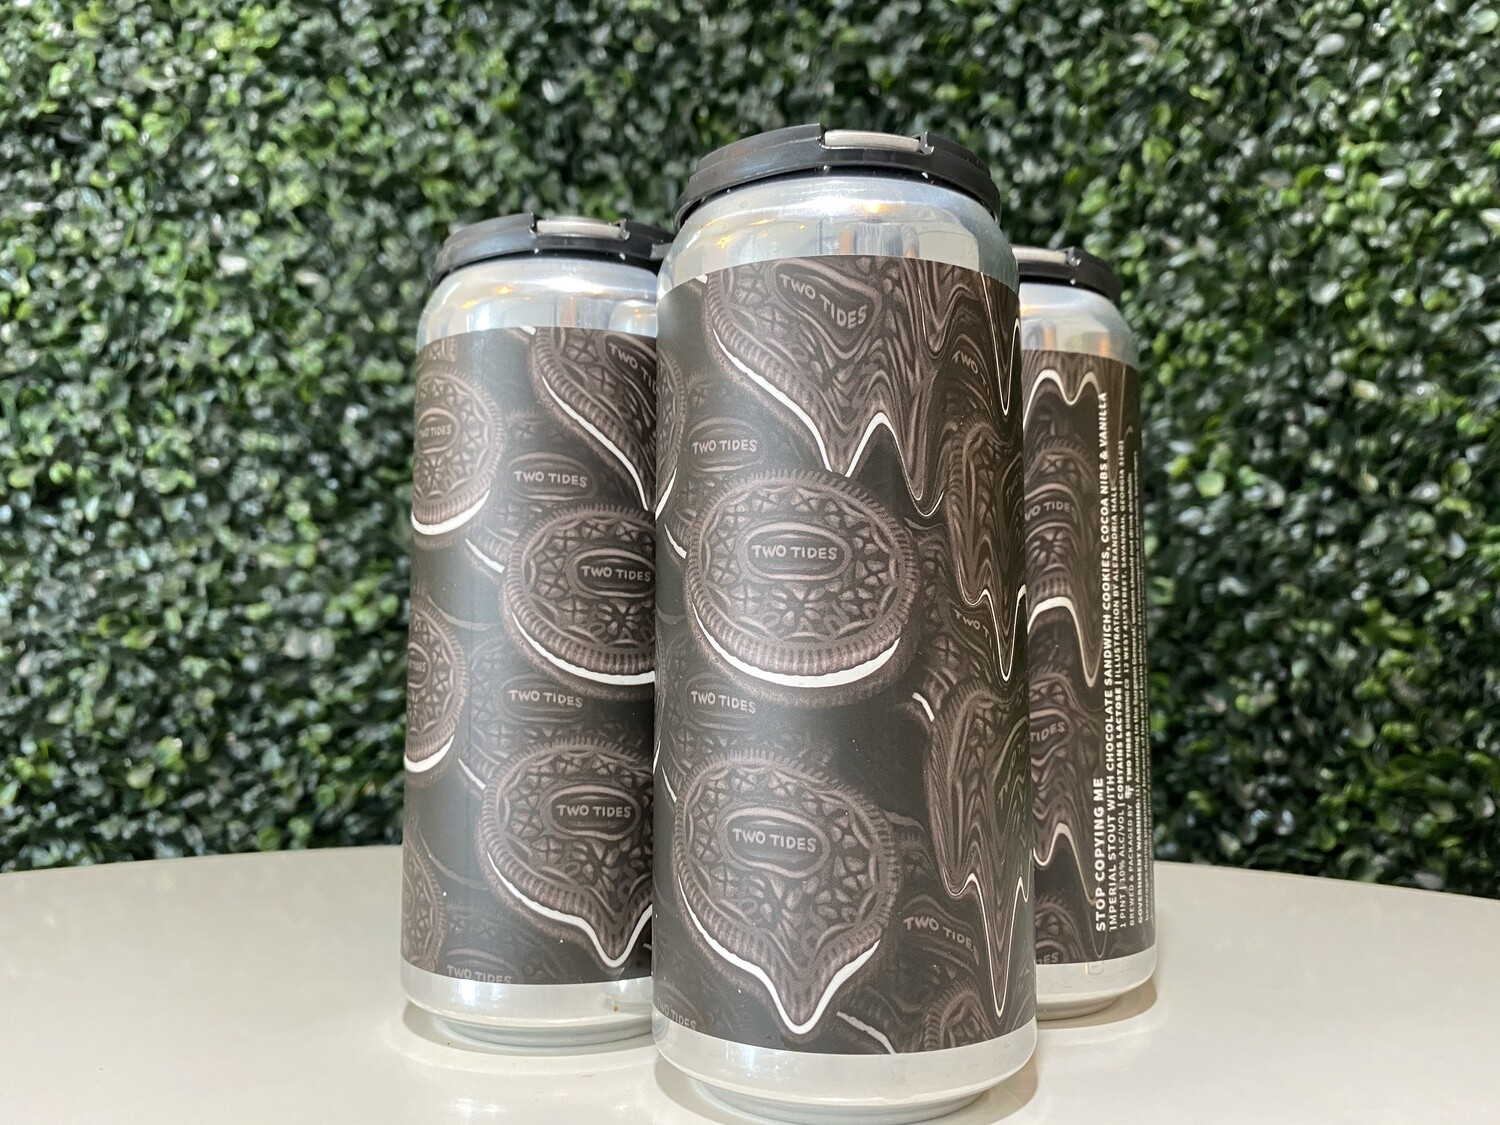 Two Tides - Stop Copying Me - Imperial Stout  - 10%% ABV - 16oz Can